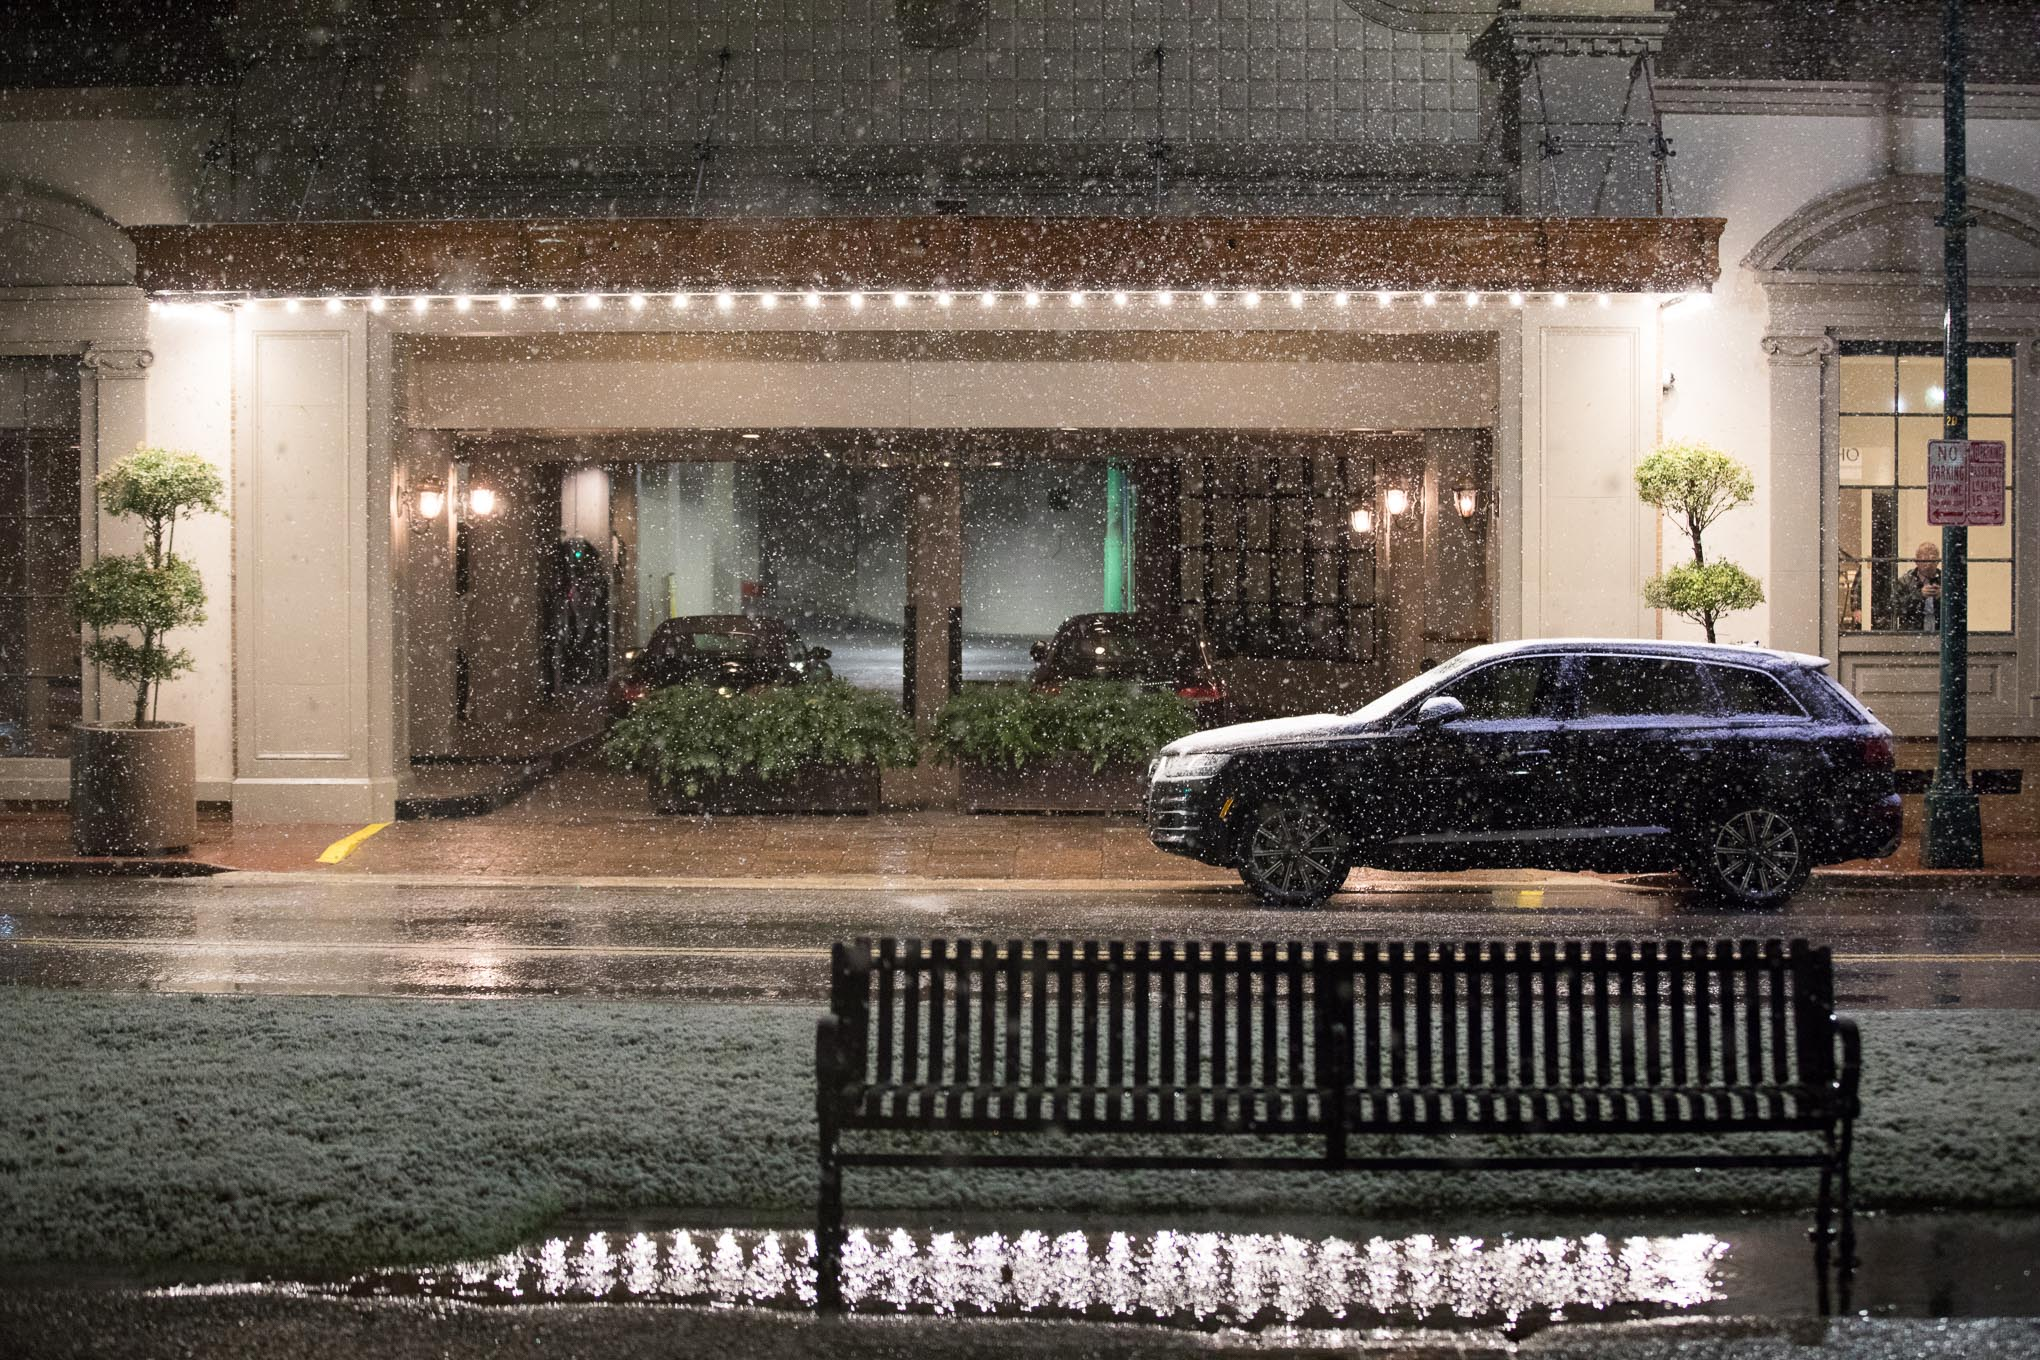 Heavy snow falls in downtown San Antonio for the first time since 1985.